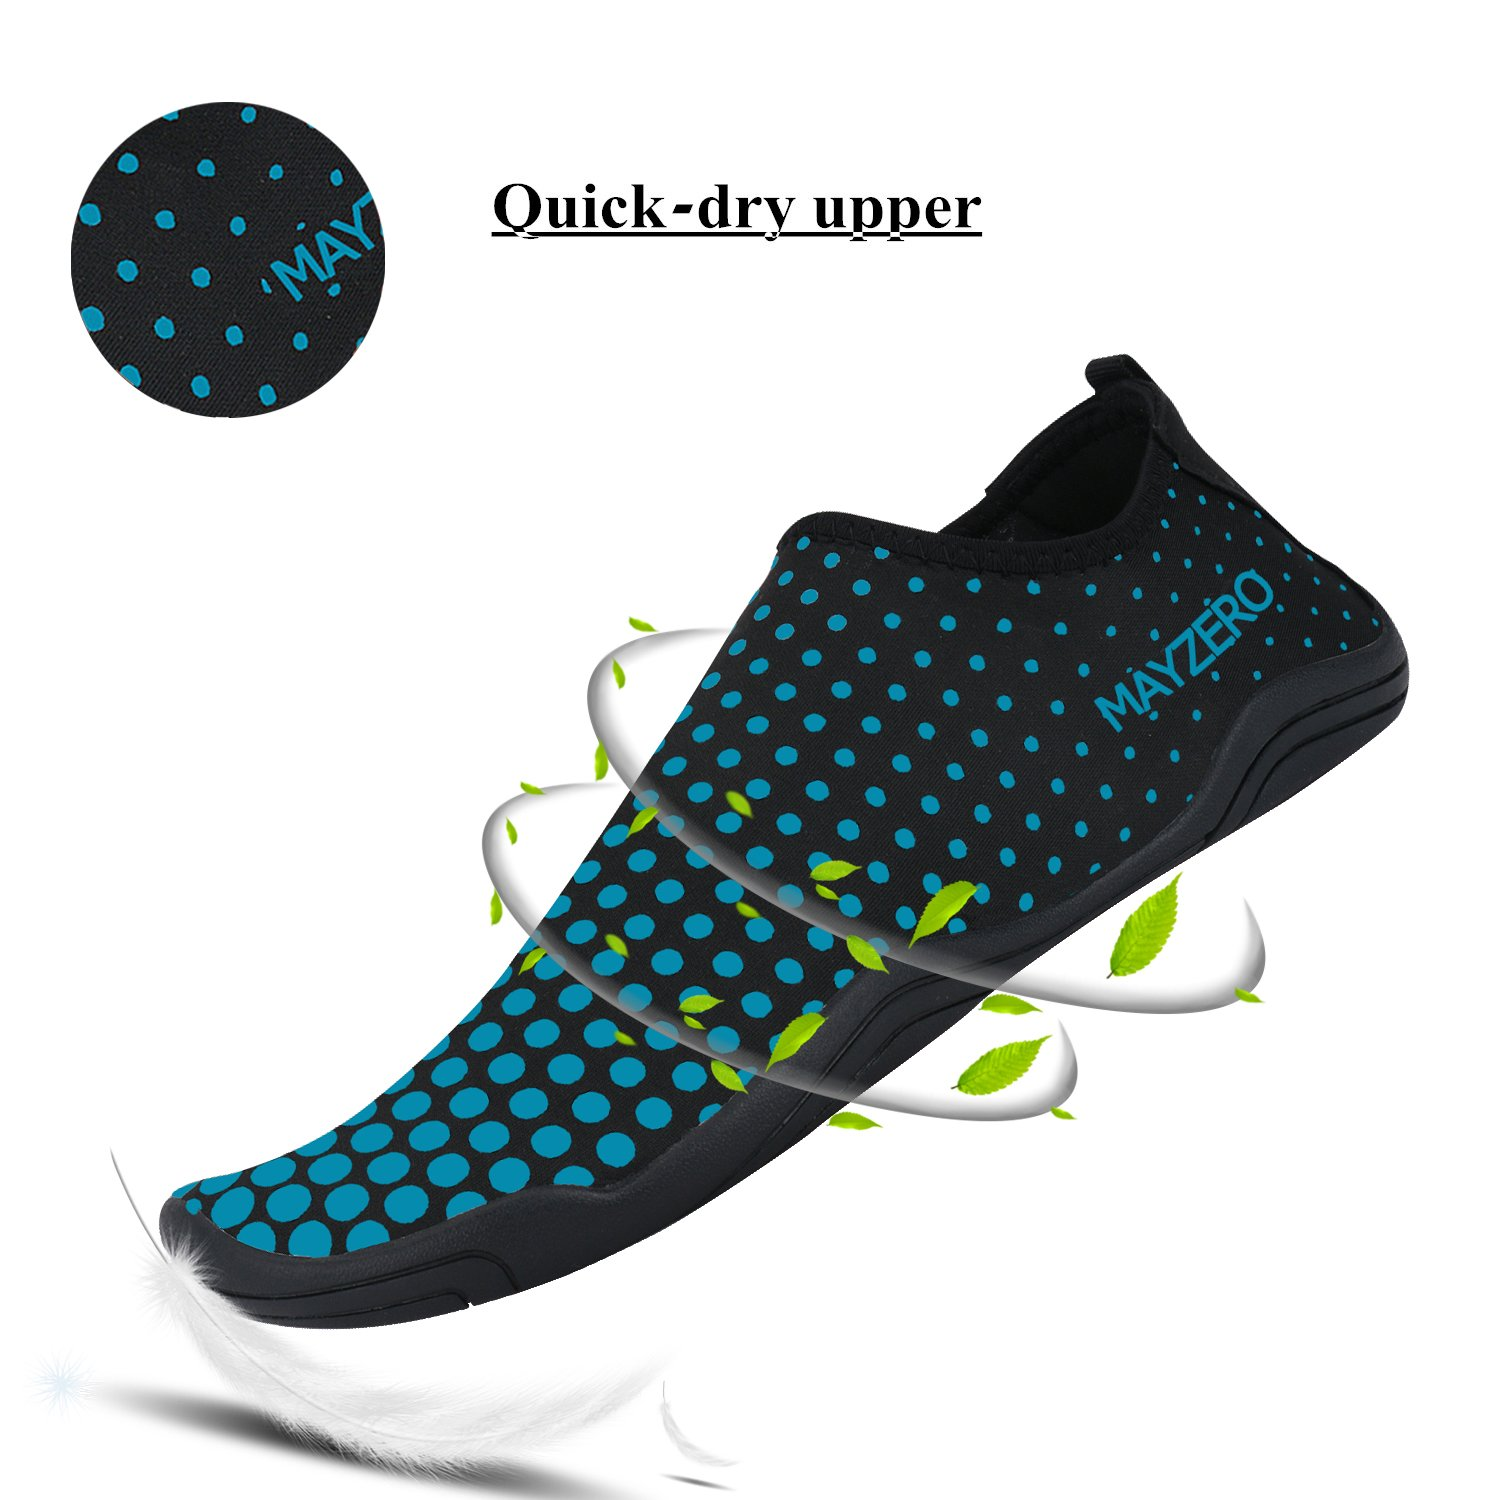 WXDZ Men Women Water Sports Shoes Quick Dry Barefoot Aqua Socks Swim Shoes for Pool Beach Walking Running (10.5 US Women/9 US Men, Dot-Blue) by WXDZ (Image #2)